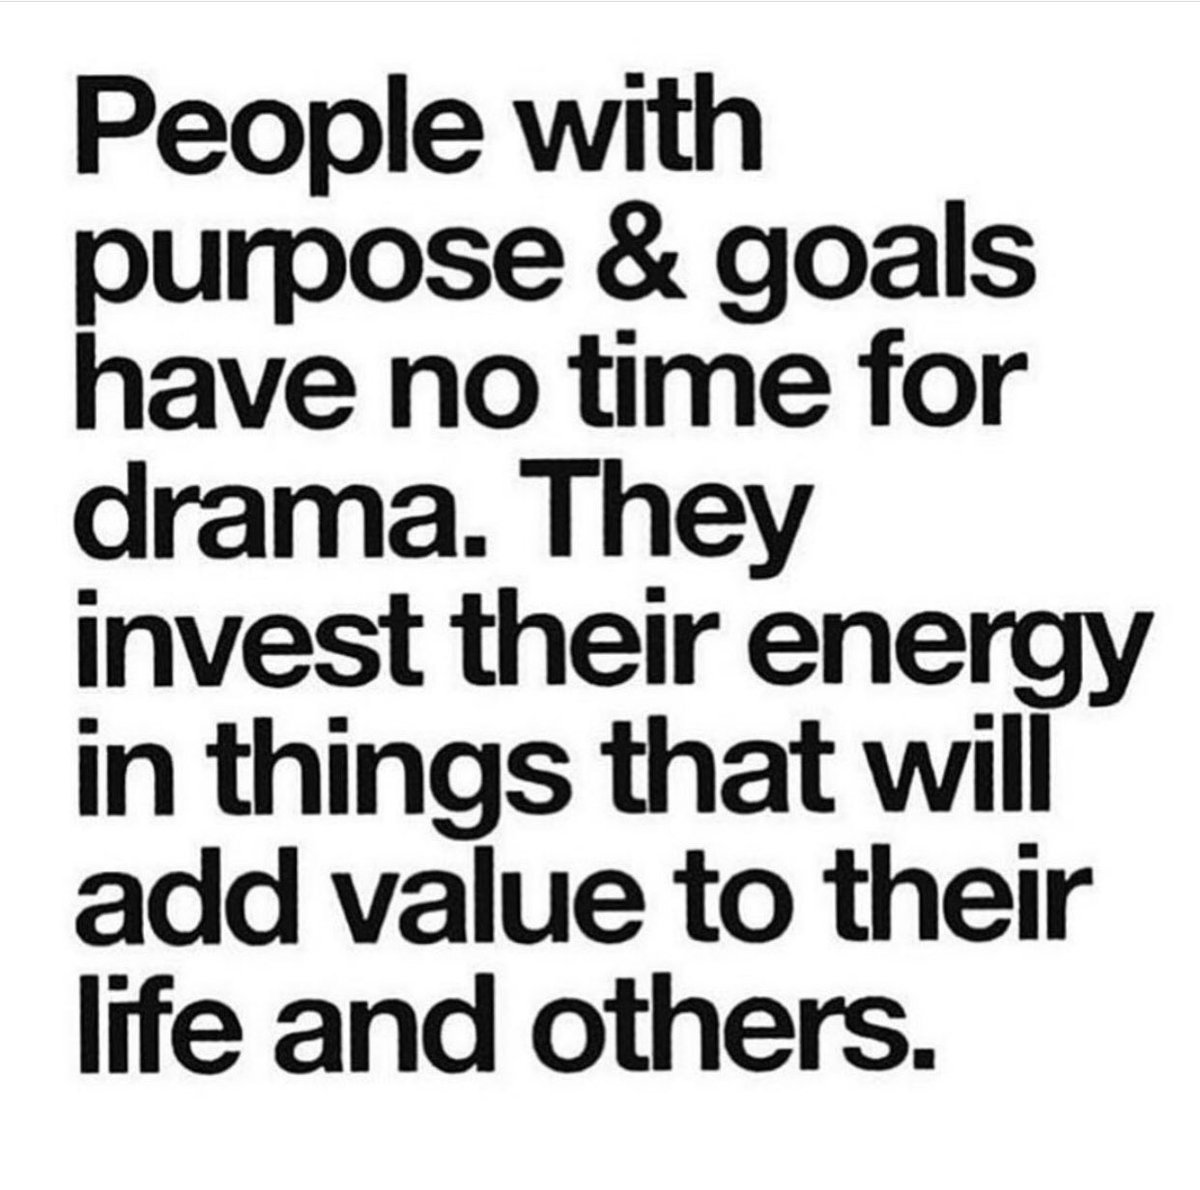 Add value to your life and others. #leadership #vision pic.twitter.com/uWL7IOEMMH